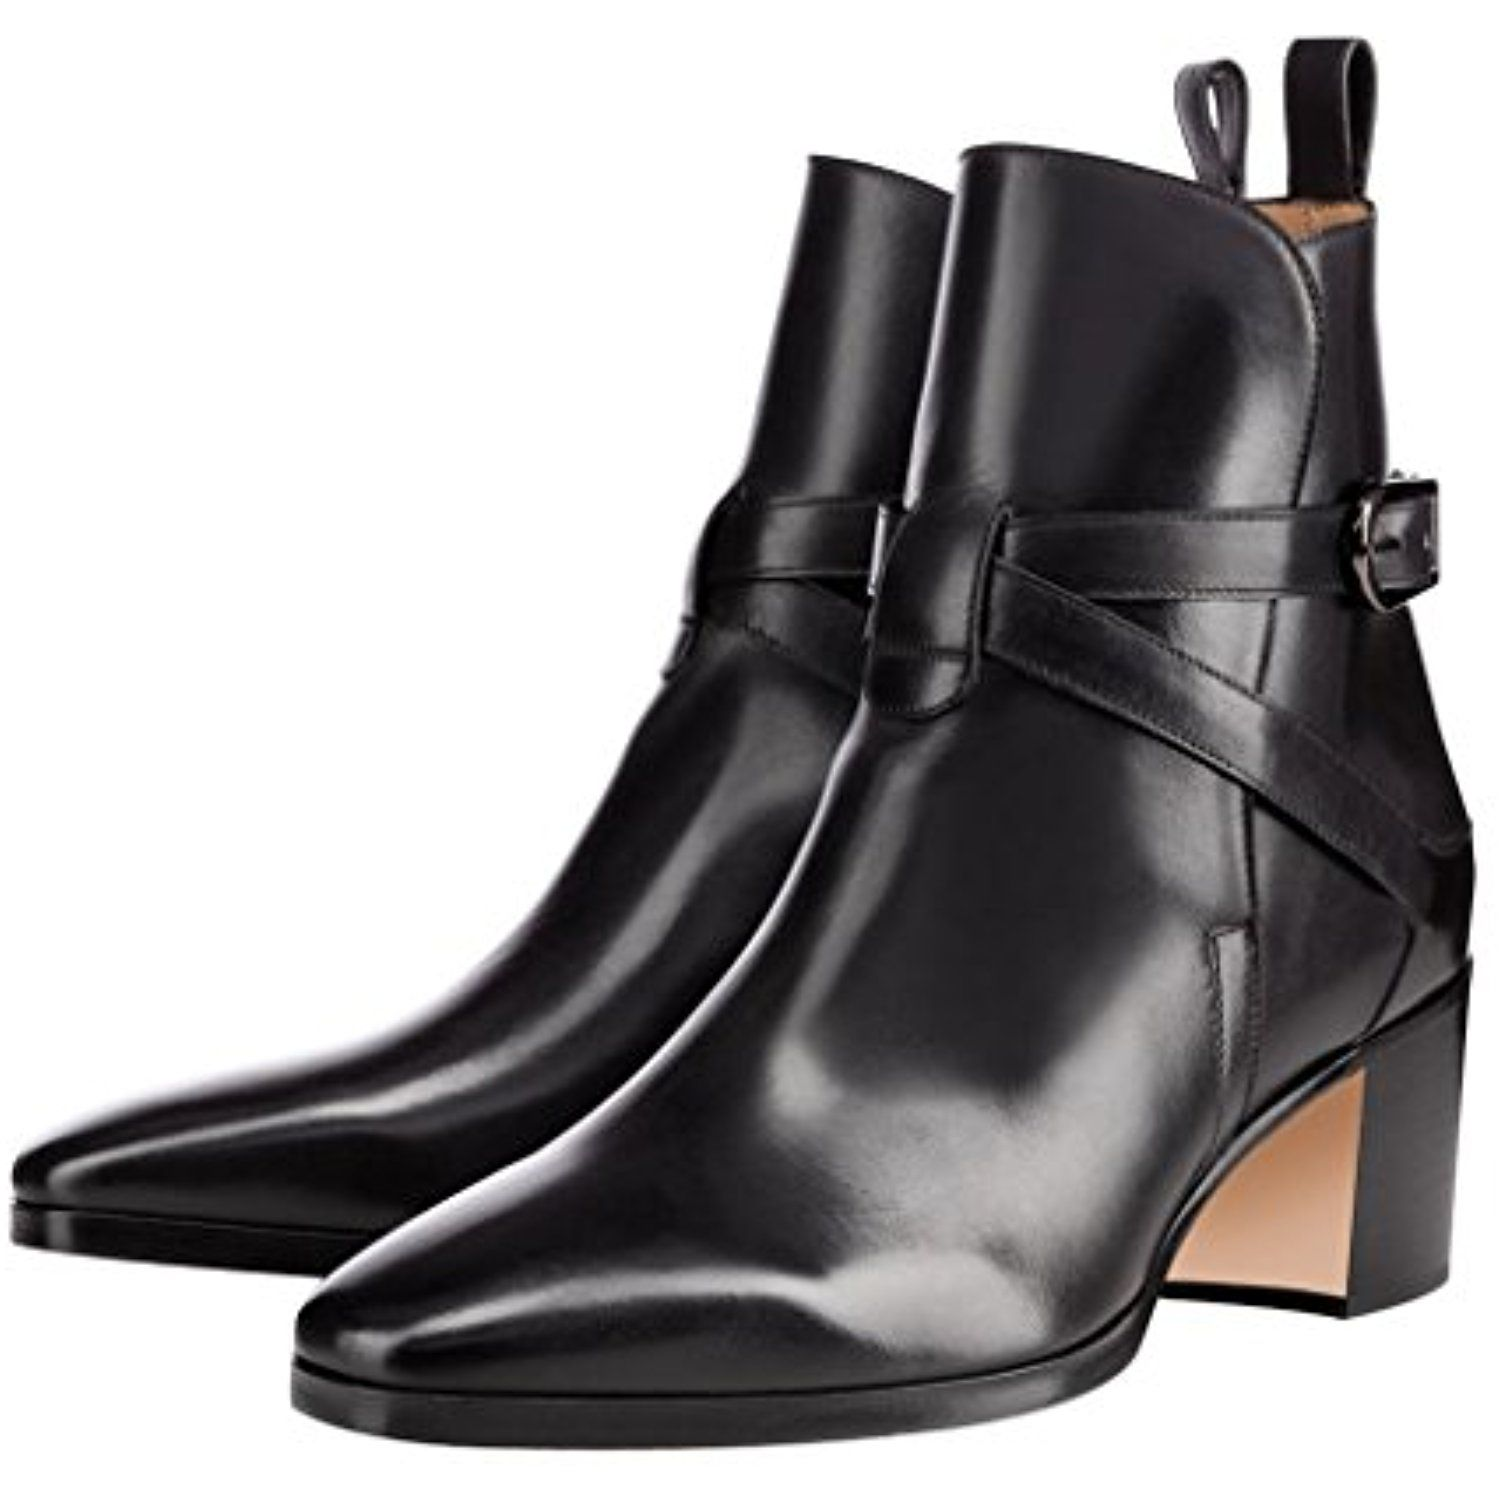 Women Pointed Toe Ankle Booties Retro Block Low Heel Boots Patent Dress Shoes With Buckles